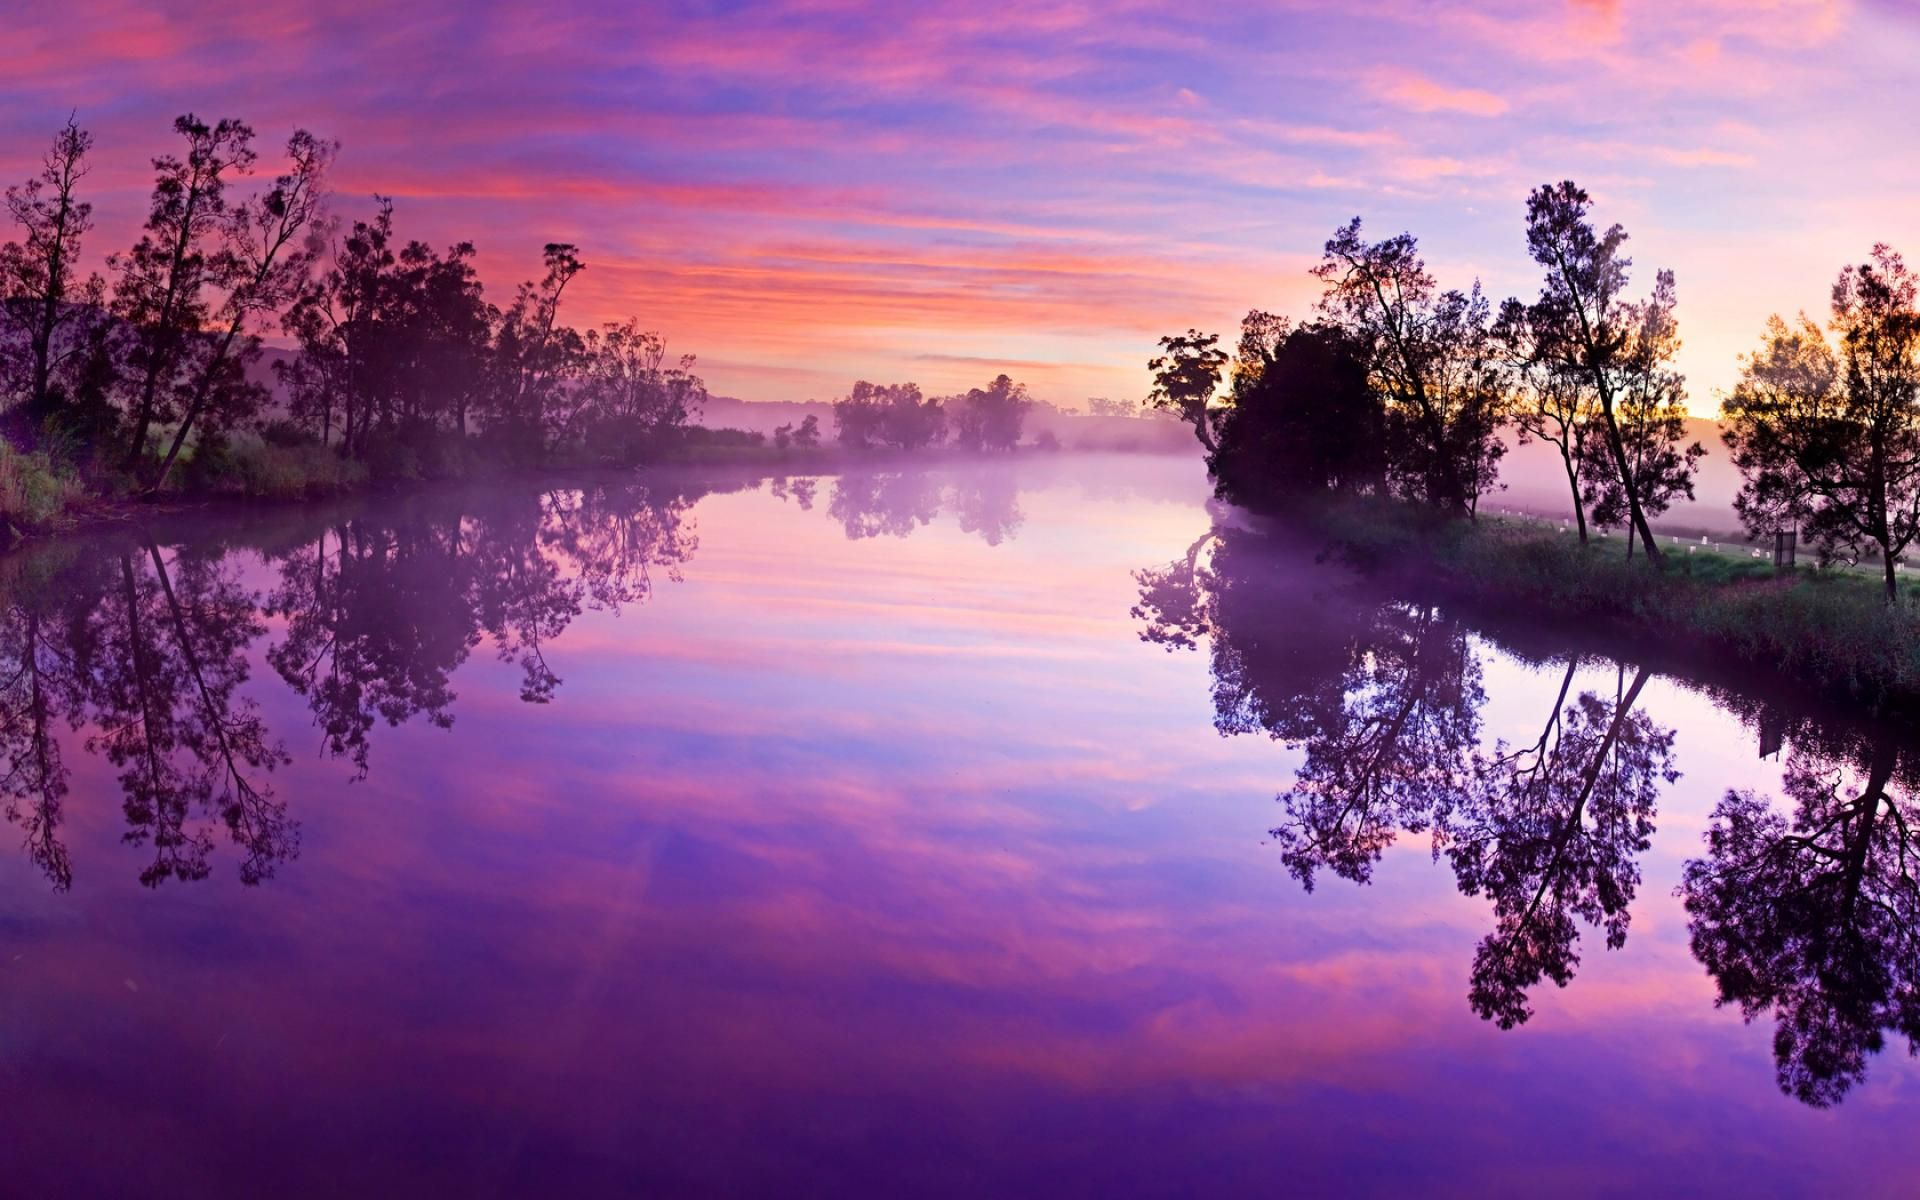 Early Fall Hd Wallpaper Sunrise Purple Wallpaper Background Sunset Scene Desktop